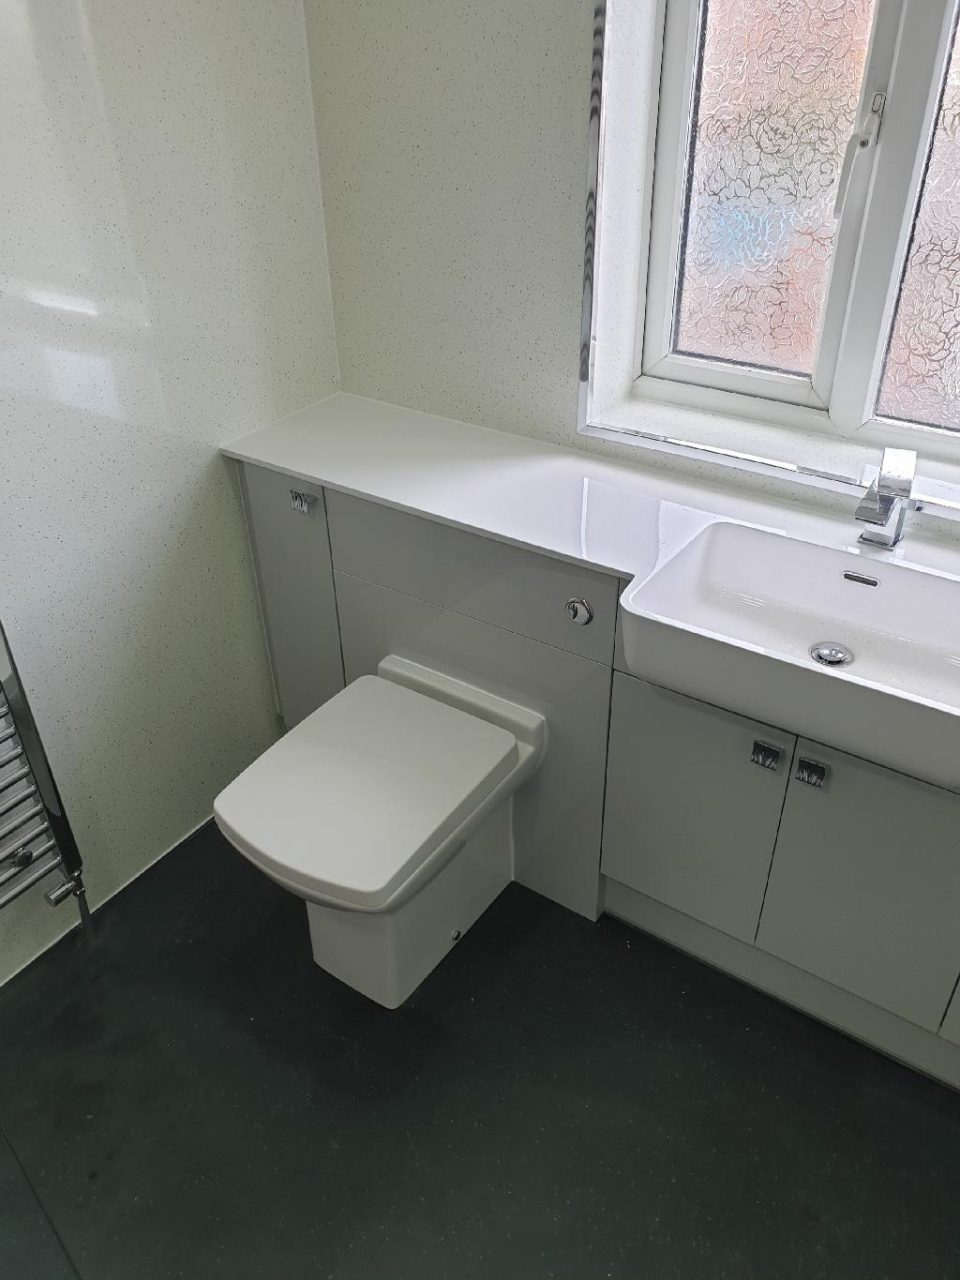 portfolio Example - Luxury Bathrooms Birmingham Wet Room - Flush Toilet-